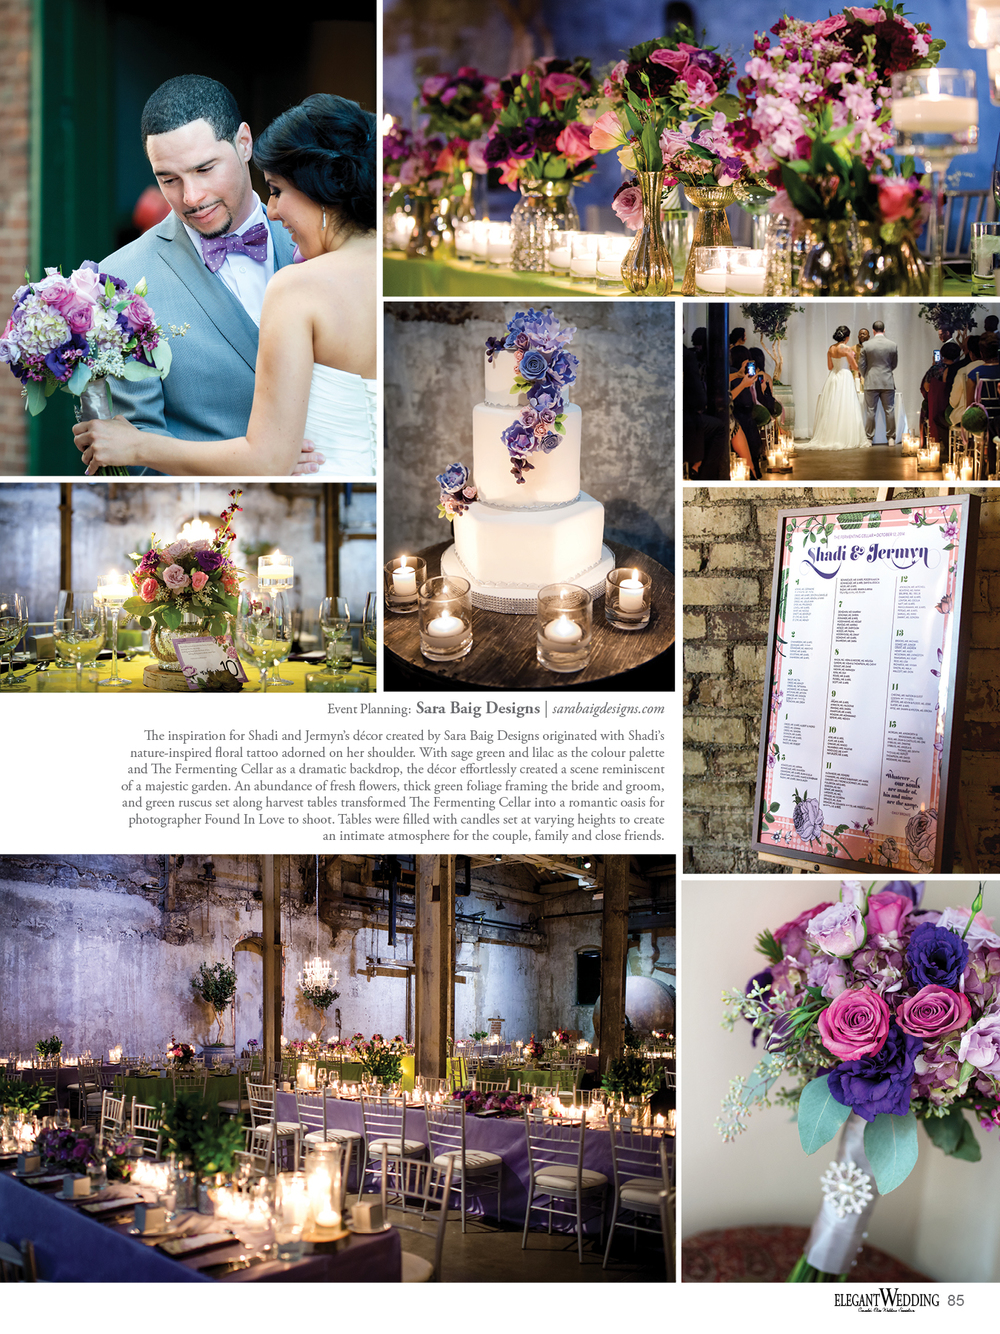 ELEGANT WEDDING MAGAZINE_85.jpg